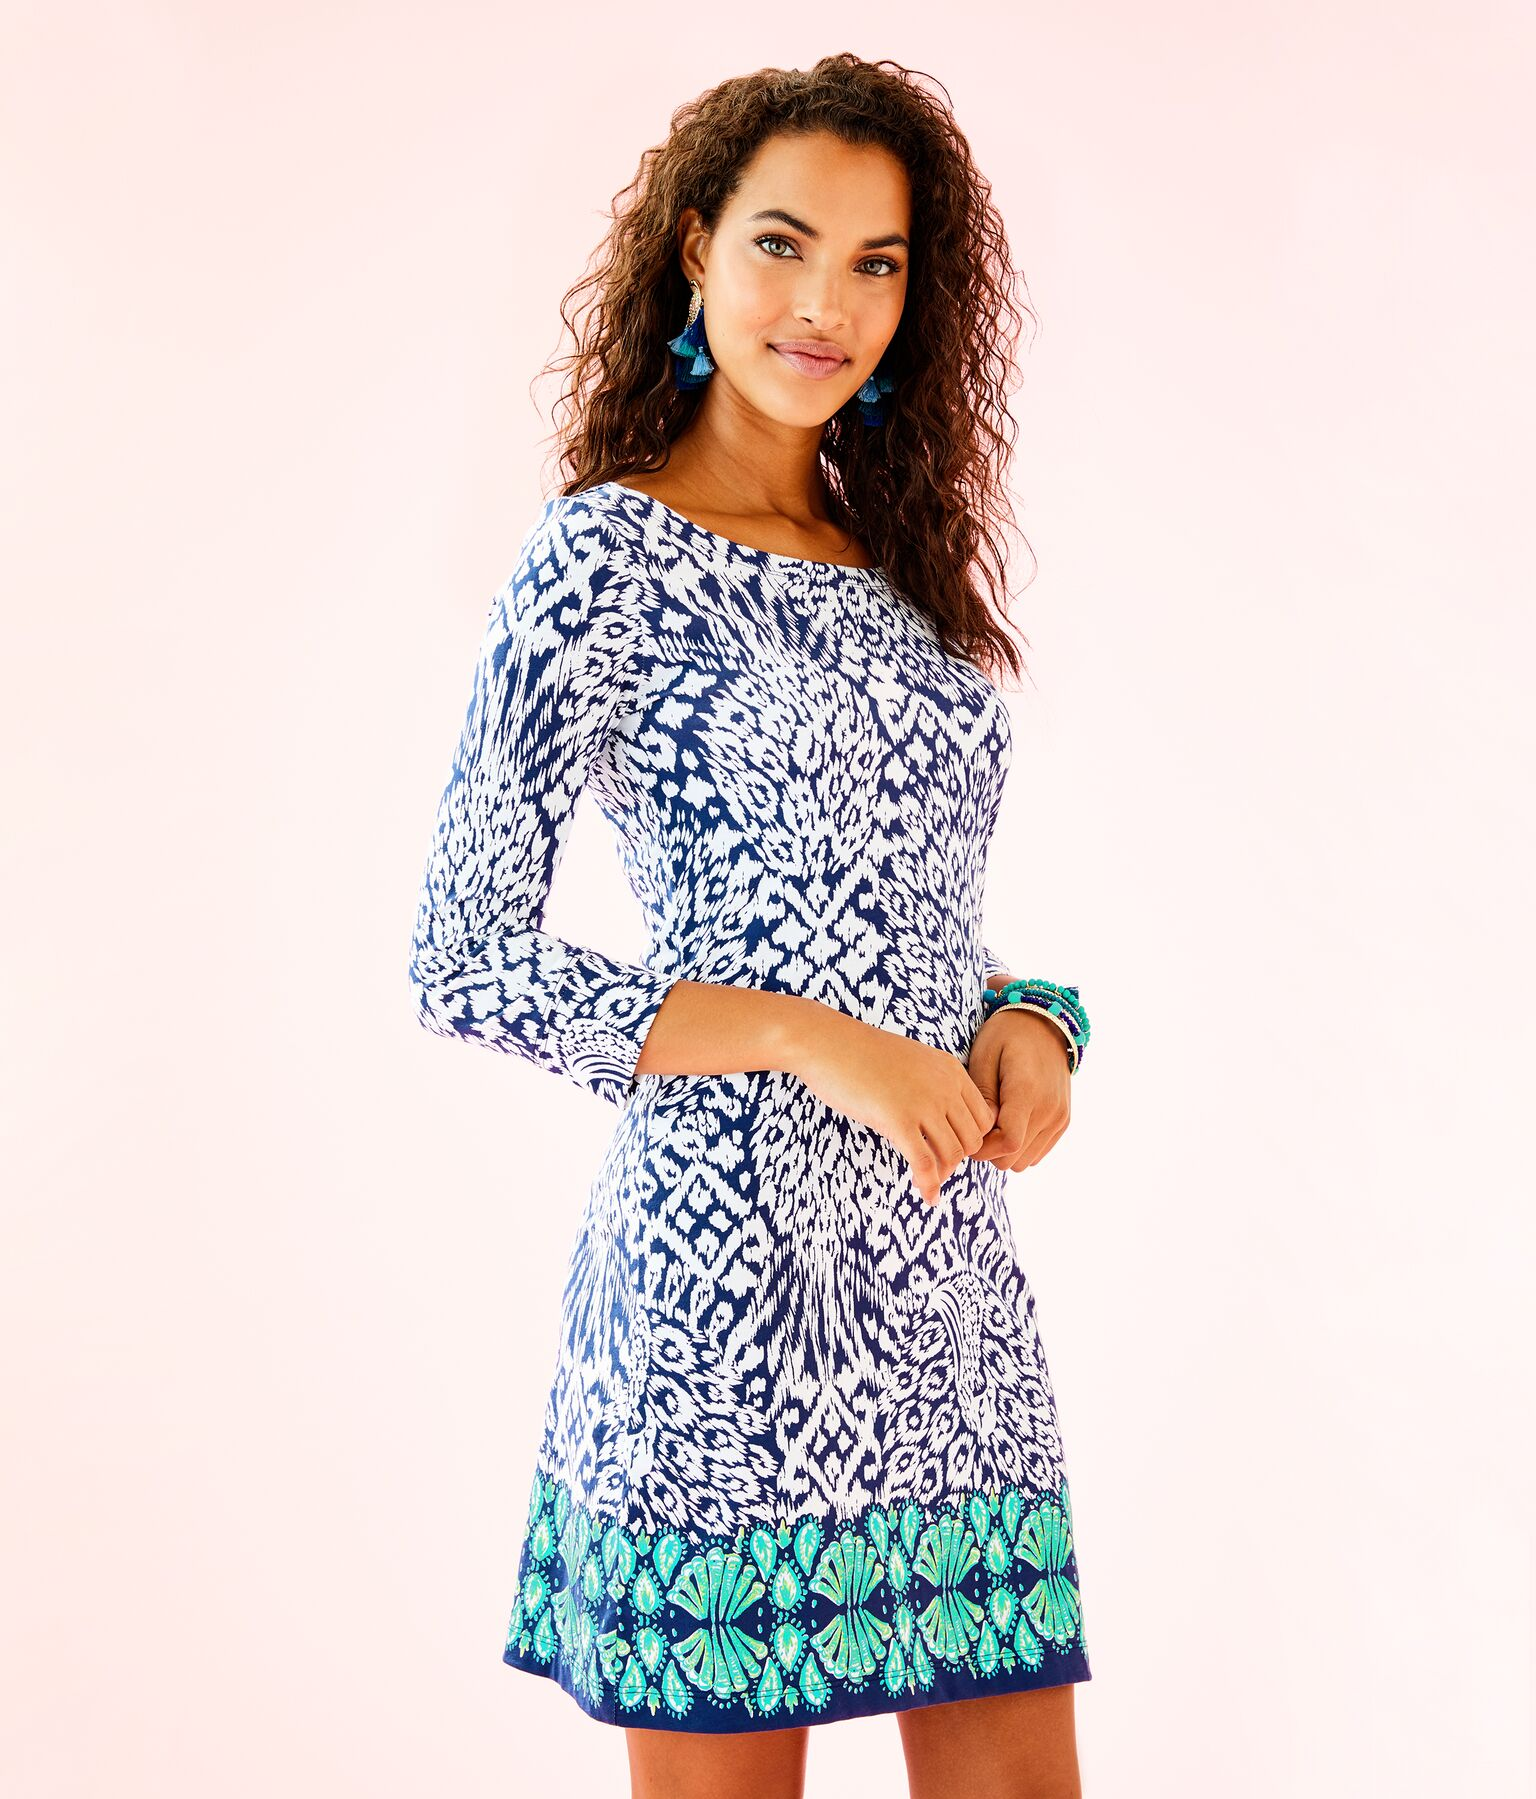 f11eabaf8ffc January 2019 Lilly Pulitzer After Party Sale